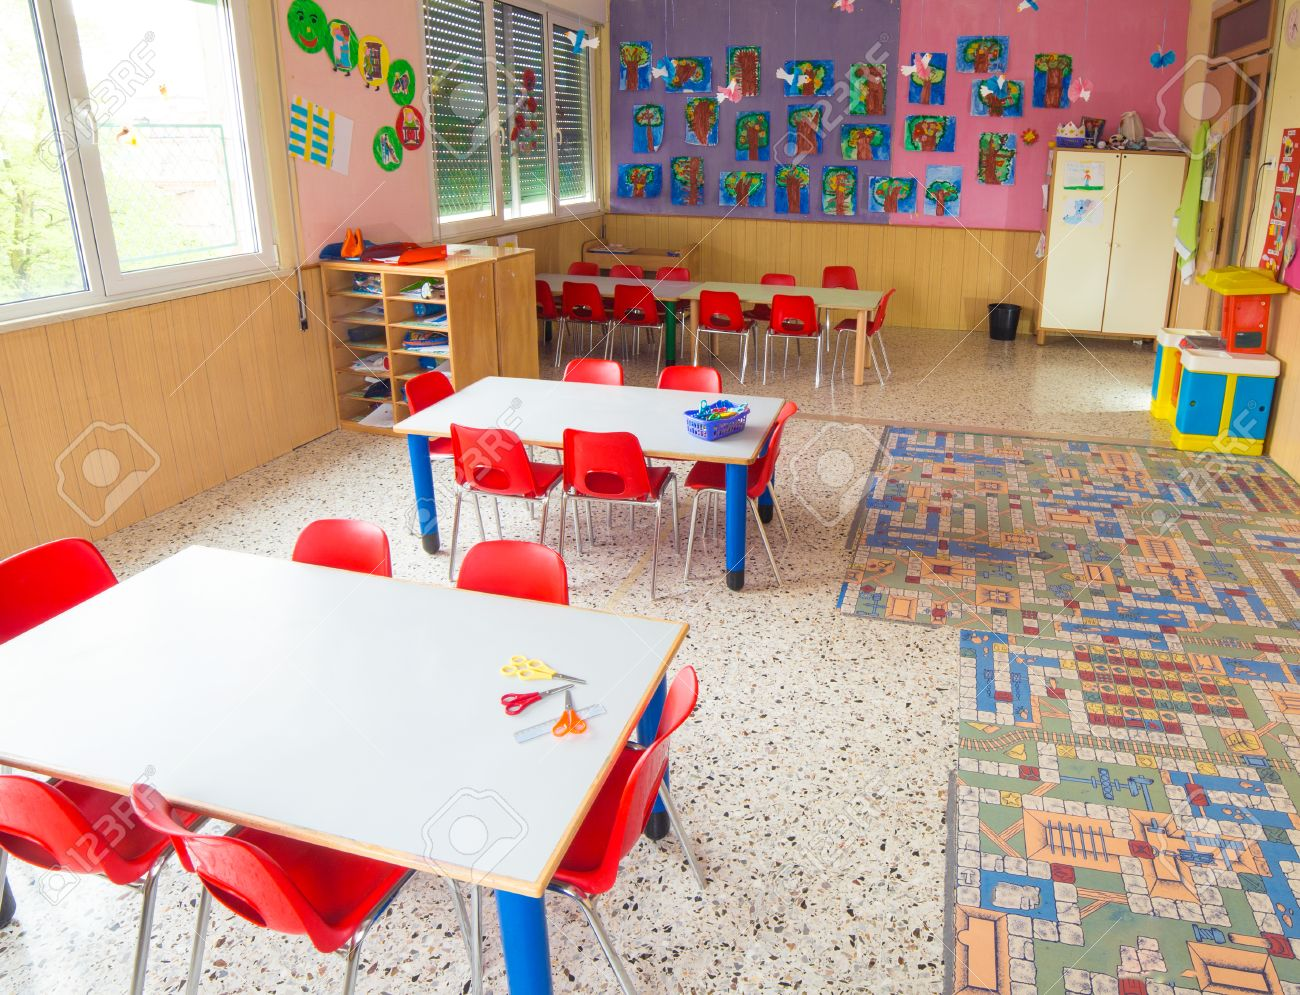 classromm of kindergarten with tables and small red chairs for children Stock Photo - 39267904